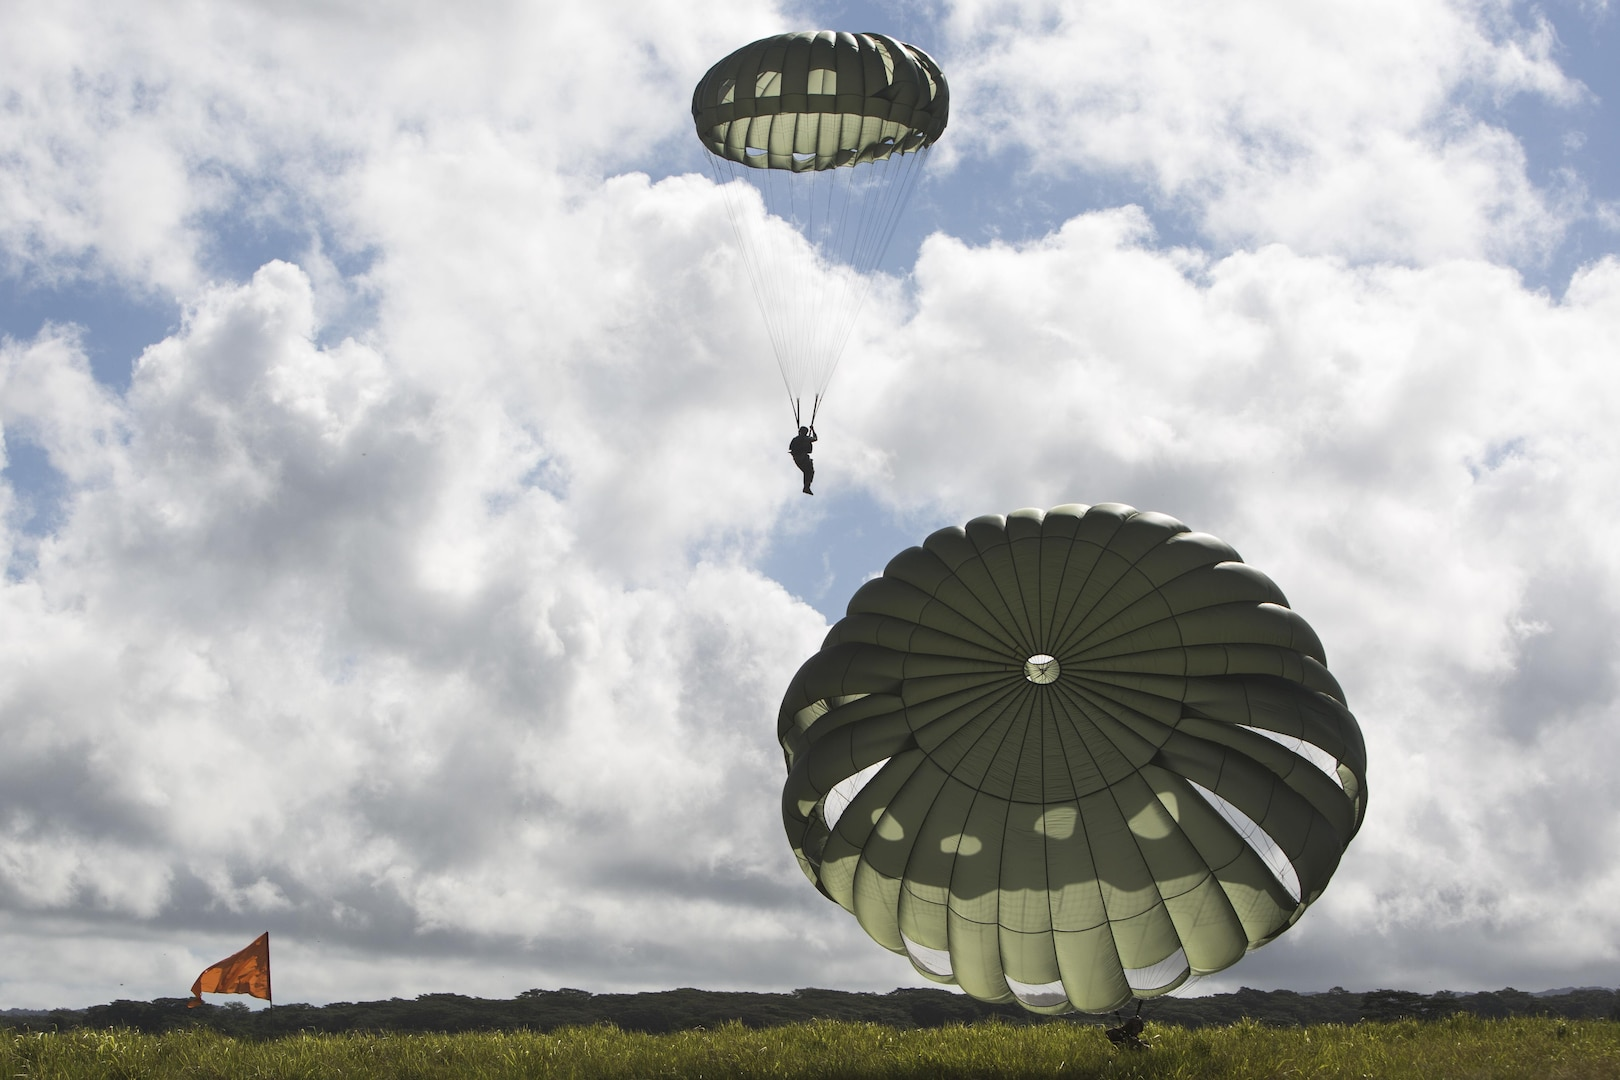 SCHOFIELD BARRACKS – Marines with 4th Force Reconnaissance Company land at a designated drop zone after conducting a static line airborne drop at Schofield Barracks, July 14, 2017. The Marines trained with U.S. Army Special Forces to maintain proficiency in completing static line and high altitude free fall airborne jumps. (U.S. Marine Corps photo by Lance Cpl. Isabelo Tabanguil)